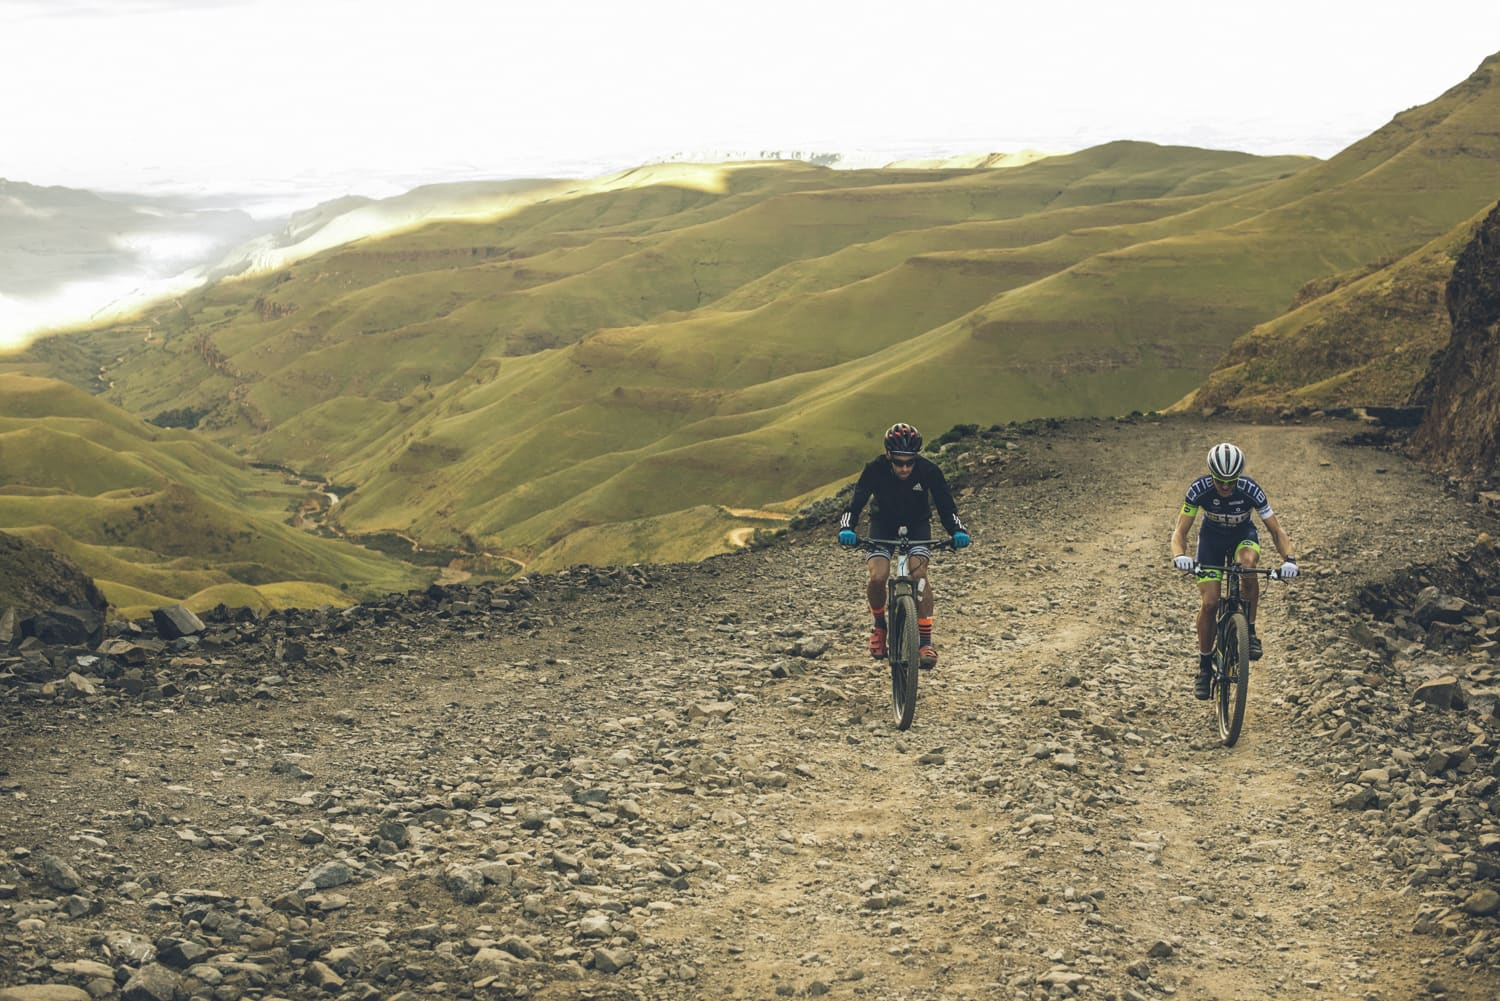 sani-pass-desmond-louw-bicycling-magazine-wowrides-0095